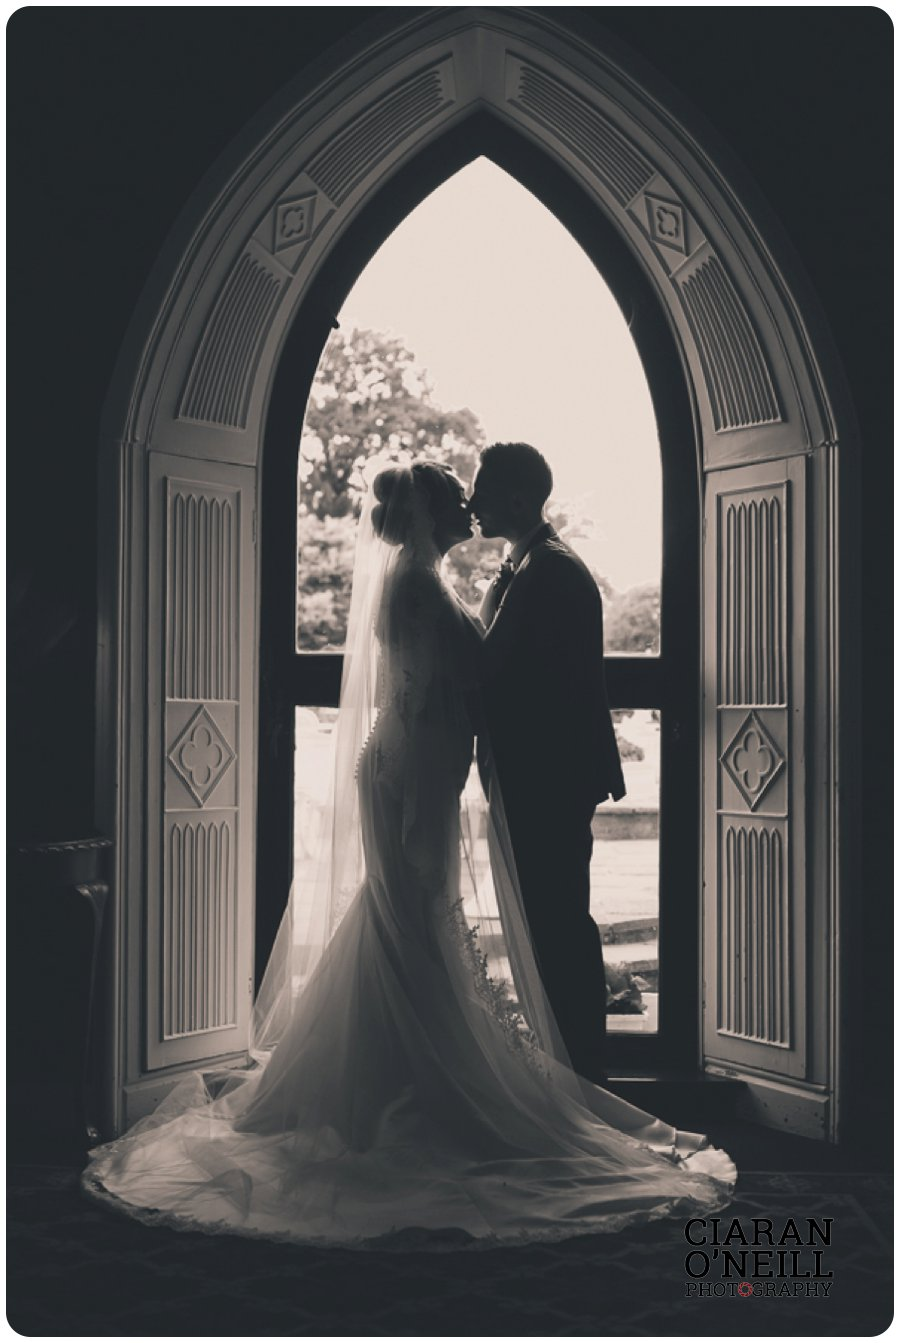 Tracey & Brian Og's wedding at Cabra Castle by Ciaran O'Neill Photography 19